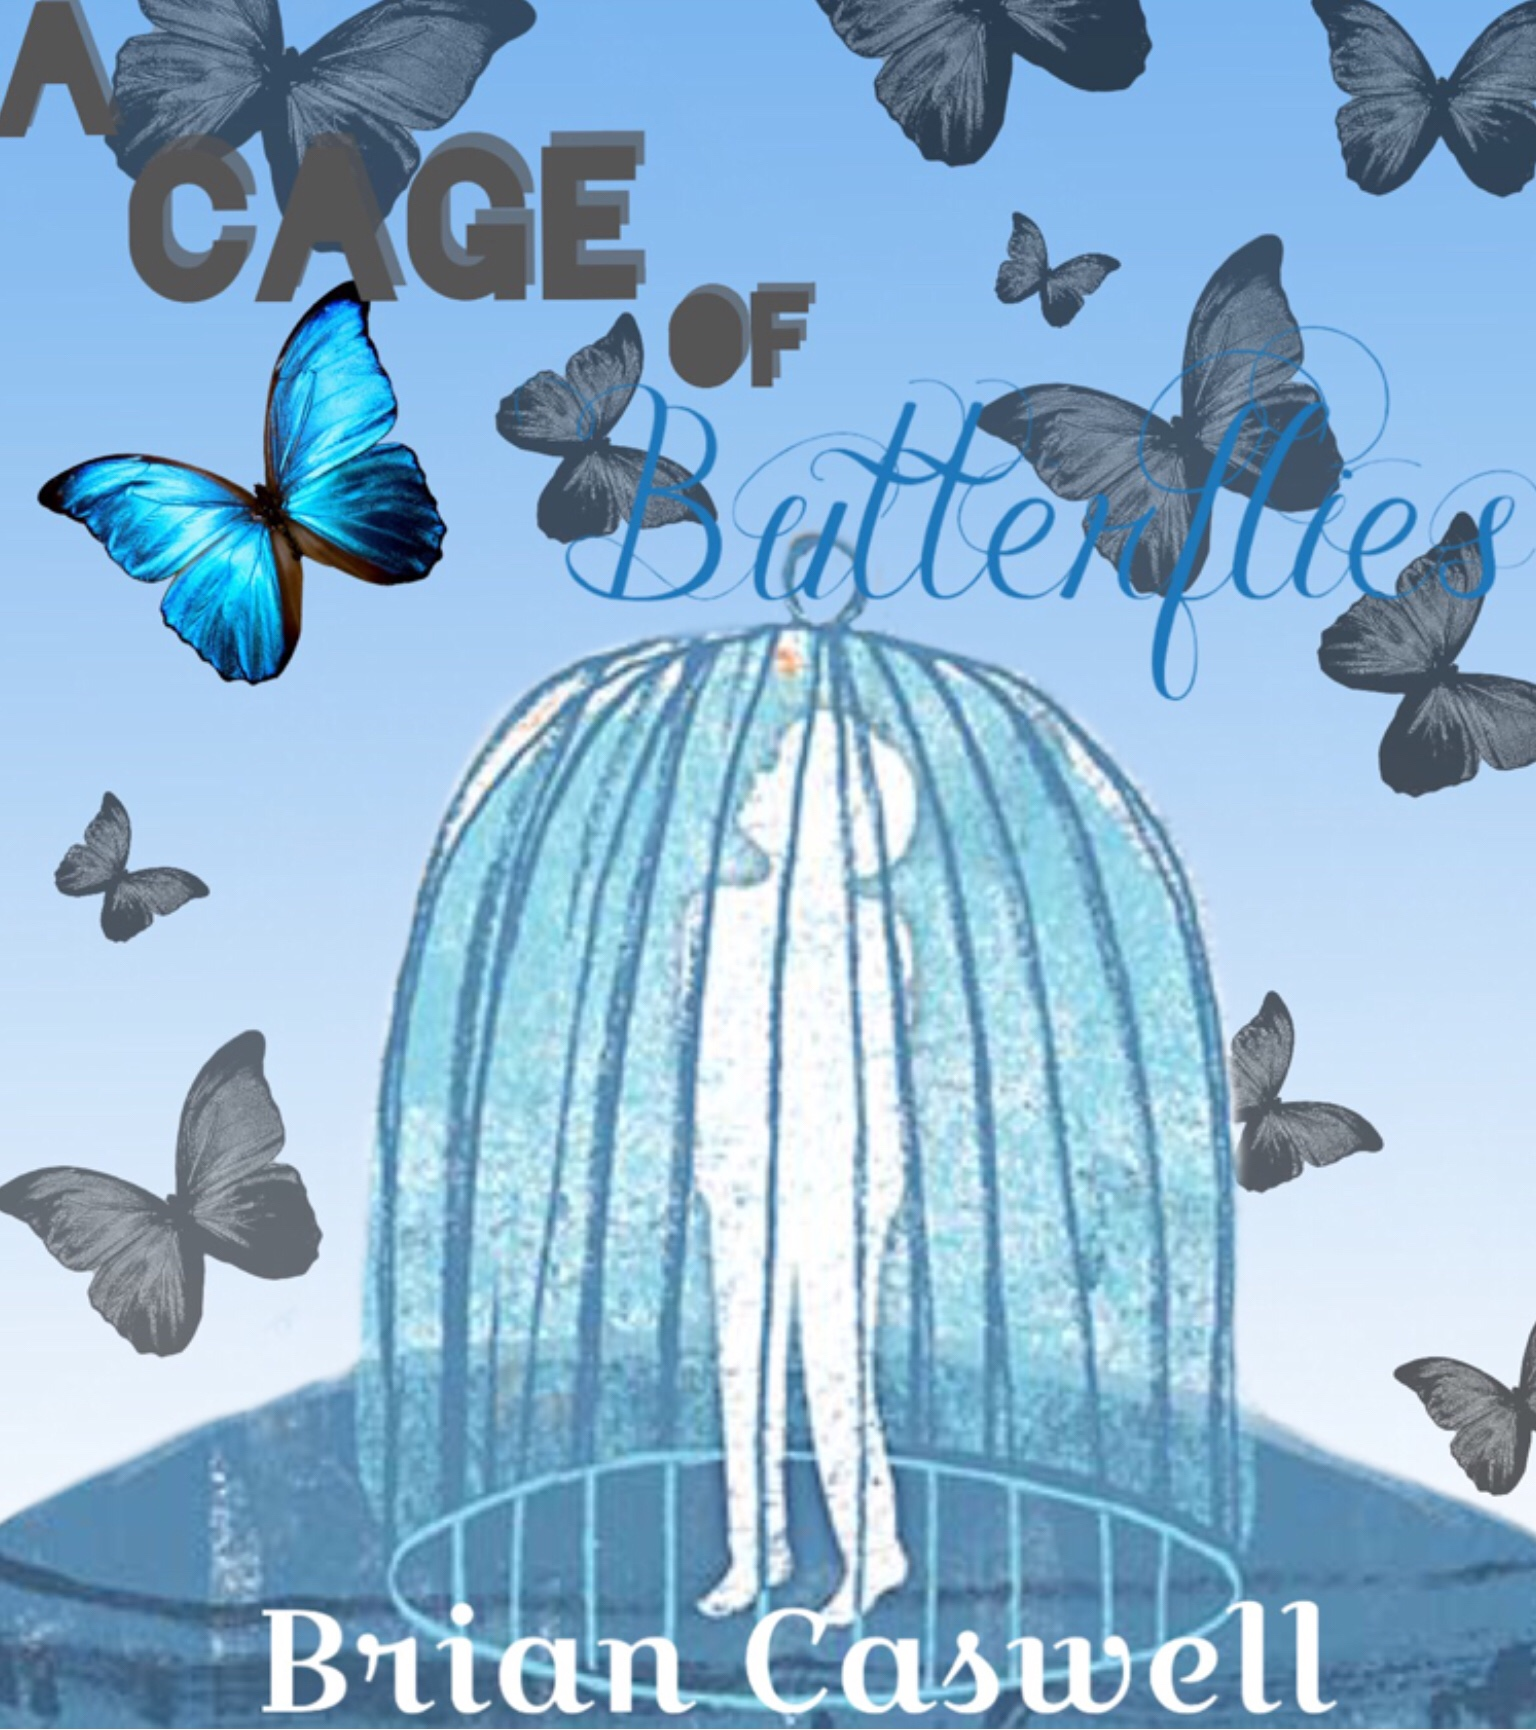 a cage of butterflies Butterfly cage-butterfly, insect, animal rearing/breeding/display cage, x x cu find this pin and more on monarch butterflies info by cathie nunez lepidtarium - butterfly and moth terrarium / parasitoid-proof rearing, breeding, display cage/habitat cu.